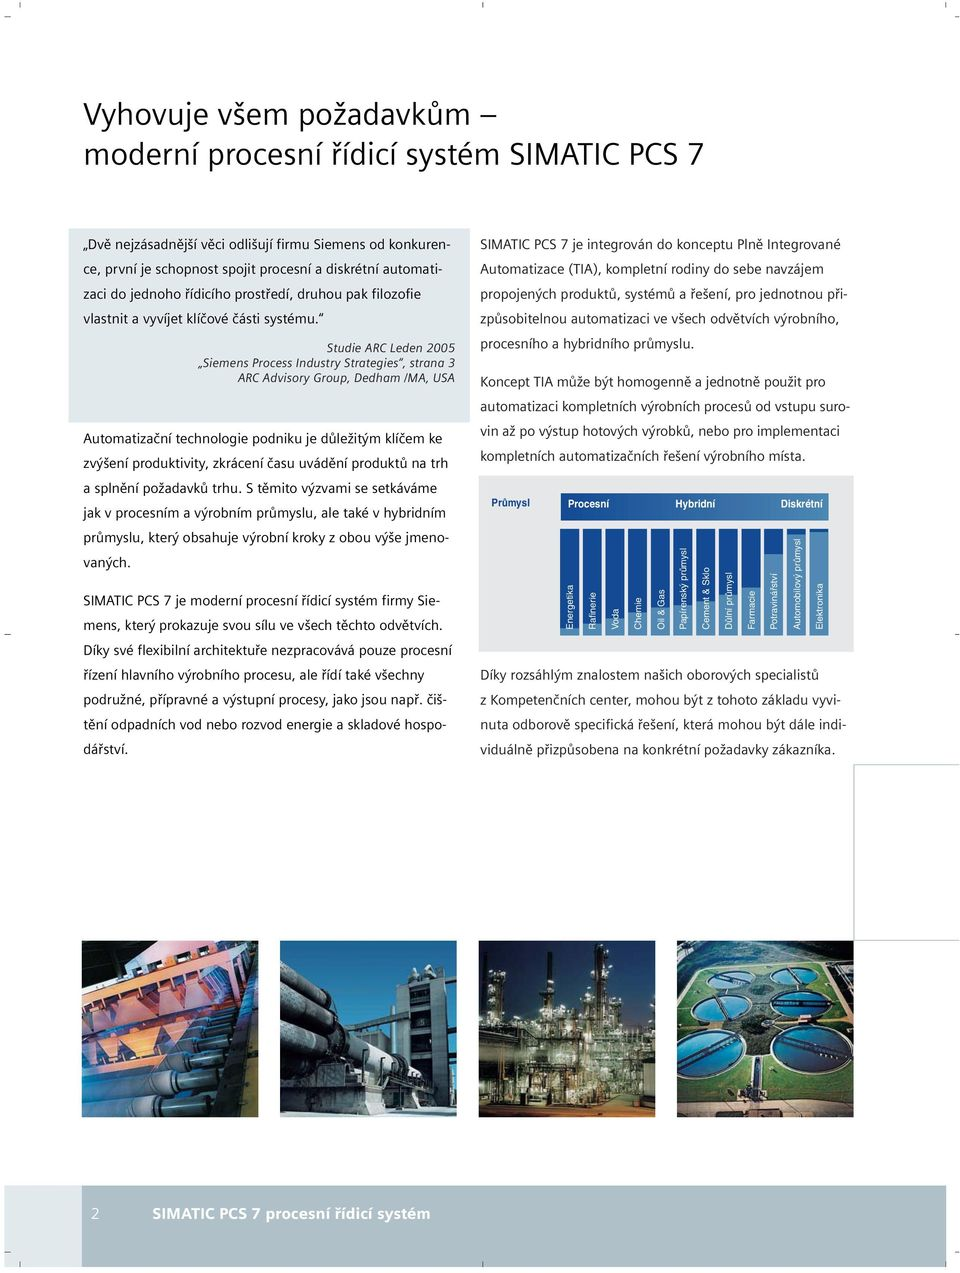 Studie ARC Leden 2005 Siemens Process Industry Strategies, strana 3 ARC Advisory Group, Dedham /MA, USA Automatizační technologie podniku je důležitým klíčem ke zvýšení produktivity, zkrácení času